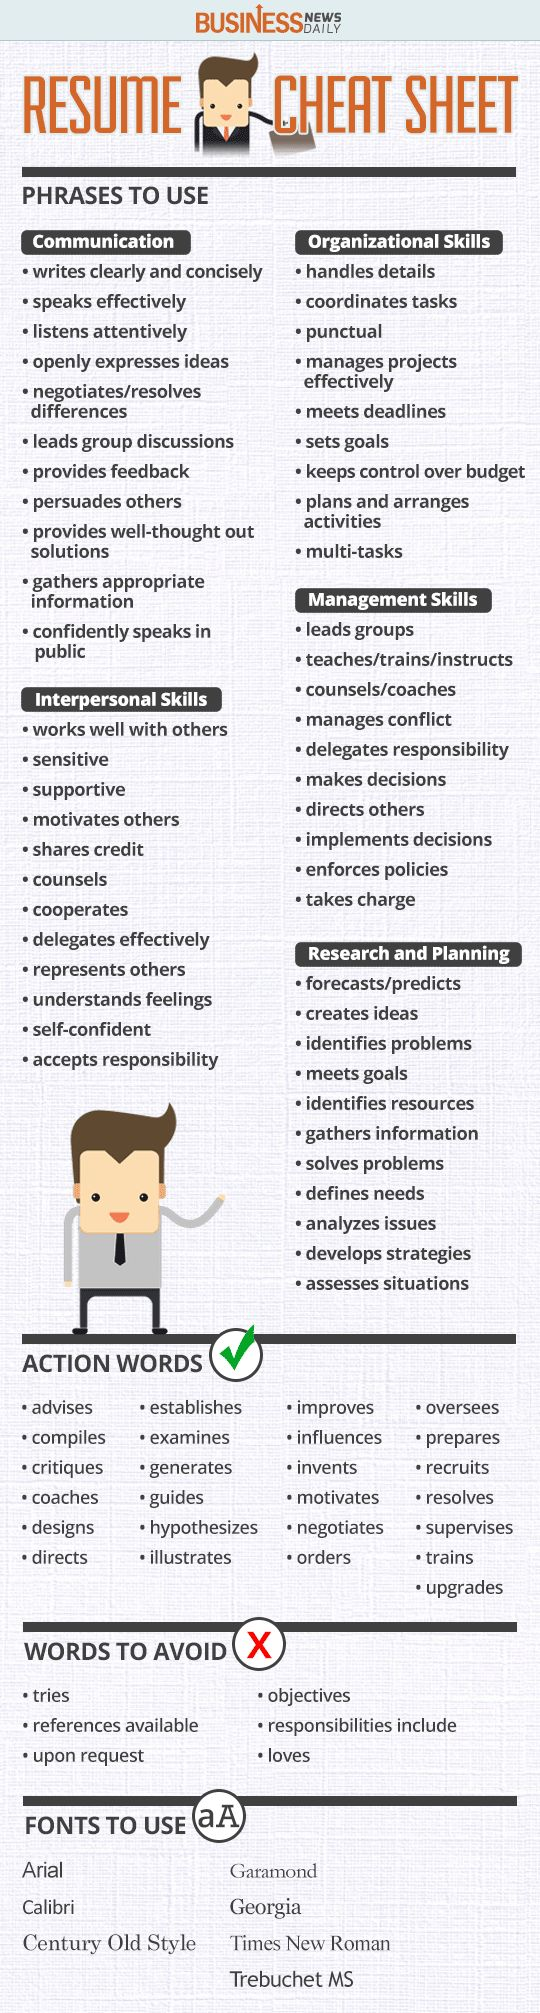 Opposenewapstandardsus  Sweet  Ideas About Resume On Pinterest  Cv Format Resume Cv And  With Licious Resume Cheat Sheet Infographic Andrews Almost Done With A Complete Unit On Employment Which With Cute Resume For Store Manager Also Healthcare Administrator Resume In Addition Importance Of Resume And Vice President Of Operations Resume As Well As Collection Resume Additionally Marketing Coordinator Resume Sample From Pinterestcom With Opposenewapstandardsus  Licious  Ideas About Resume On Pinterest  Cv Format Resume Cv And  With Cute Resume Cheat Sheet Infographic Andrews Almost Done With A Complete Unit On Employment Which And Sweet Resume For Store Manager Also Healthcare Administrator Resume In Addition Importance Of Resume From Pinterestcom